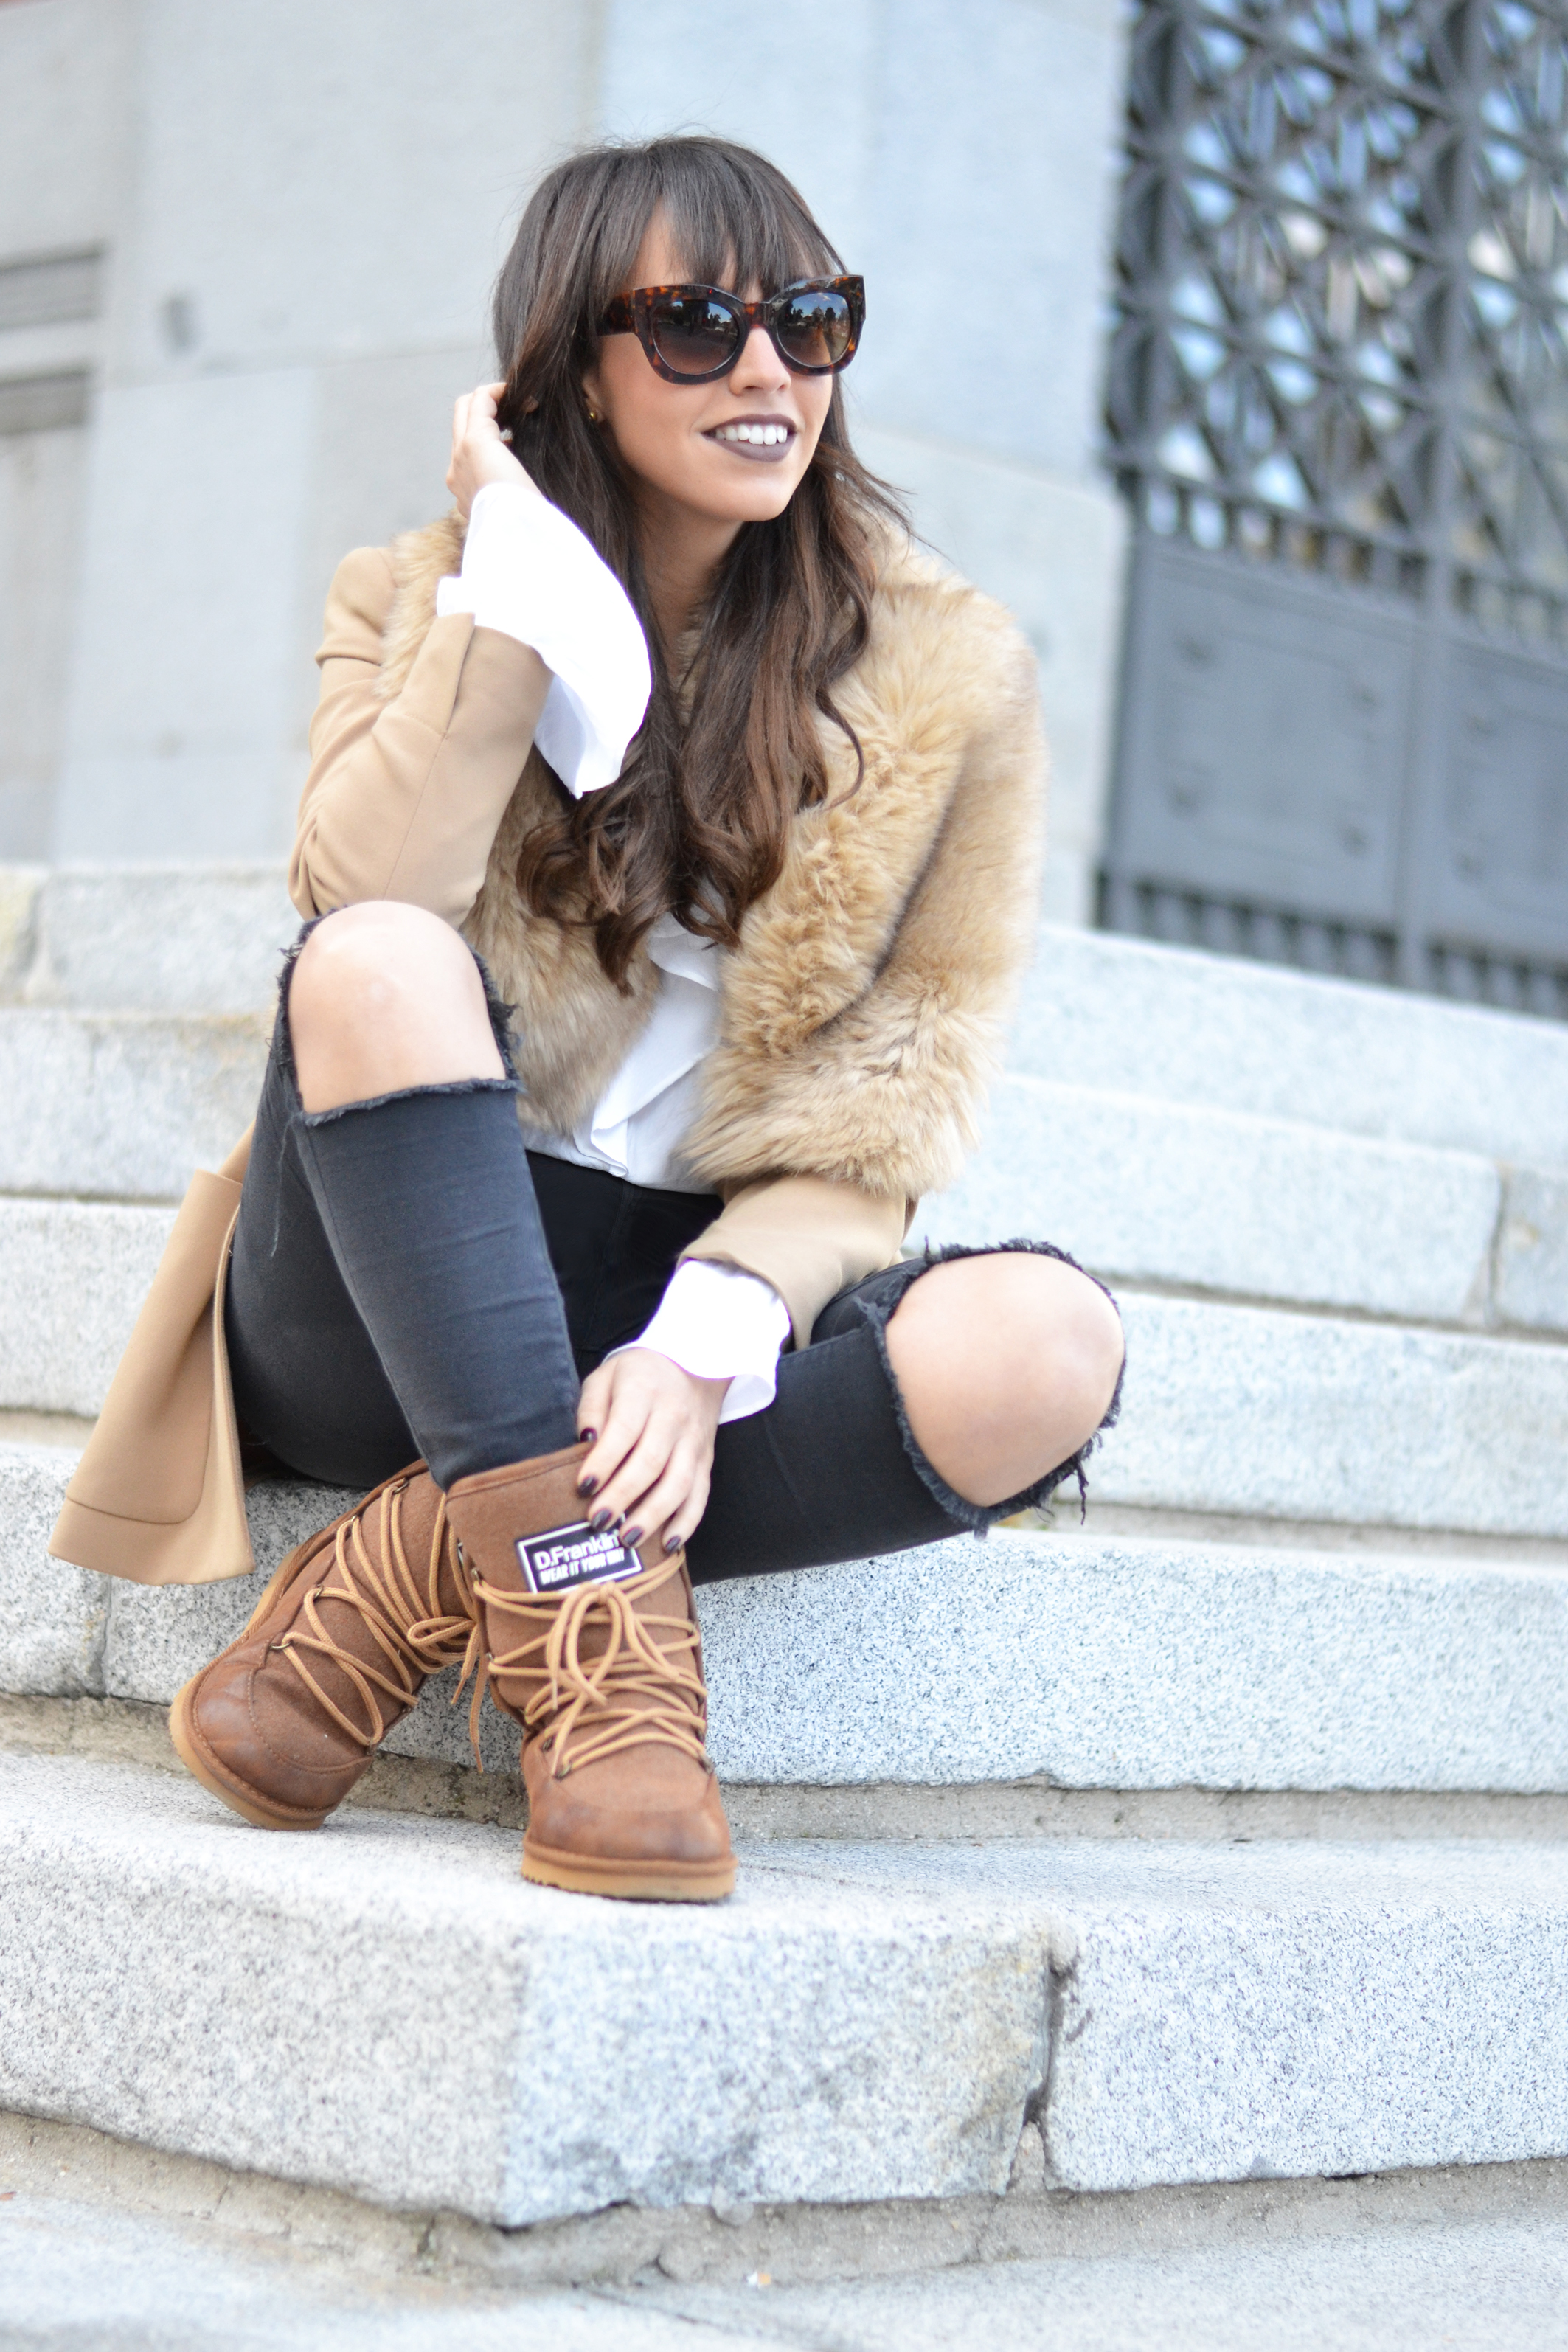 snow-boots-outfit_apres-ski_street-style_flared-sleevs_winter-outfit_(7)